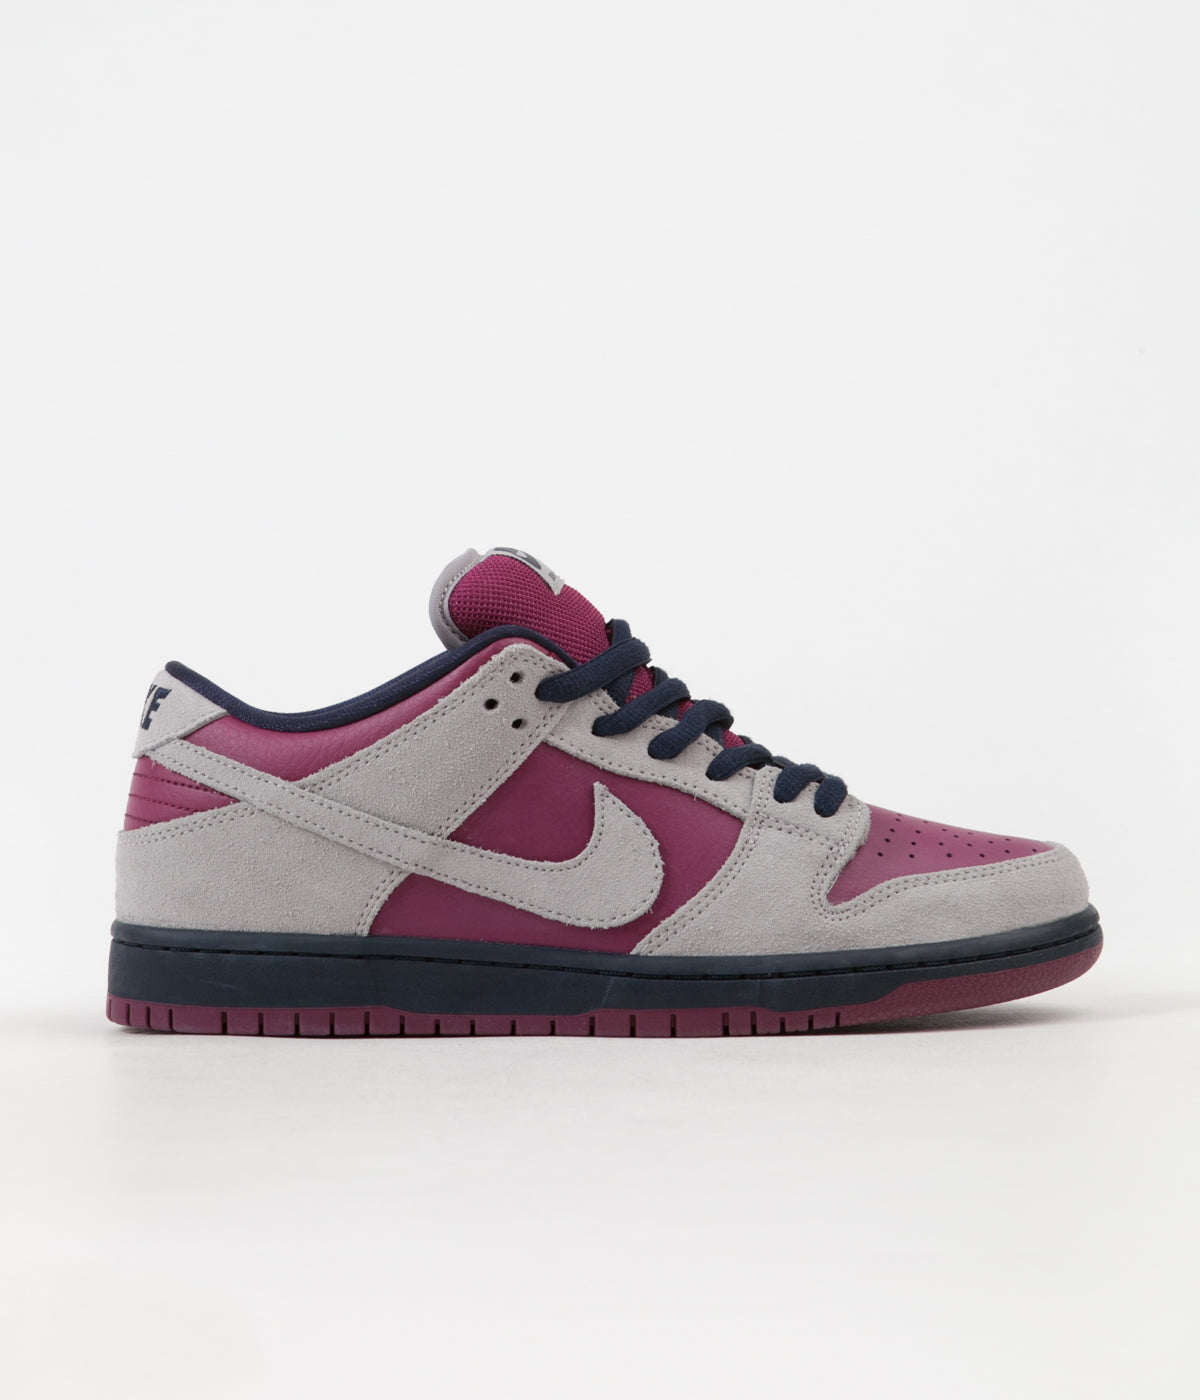 newest collection 7efb8 b0189 Nike SB Dunk Low Pro Shoes - Atmosphere Grey / Atmosphere ...